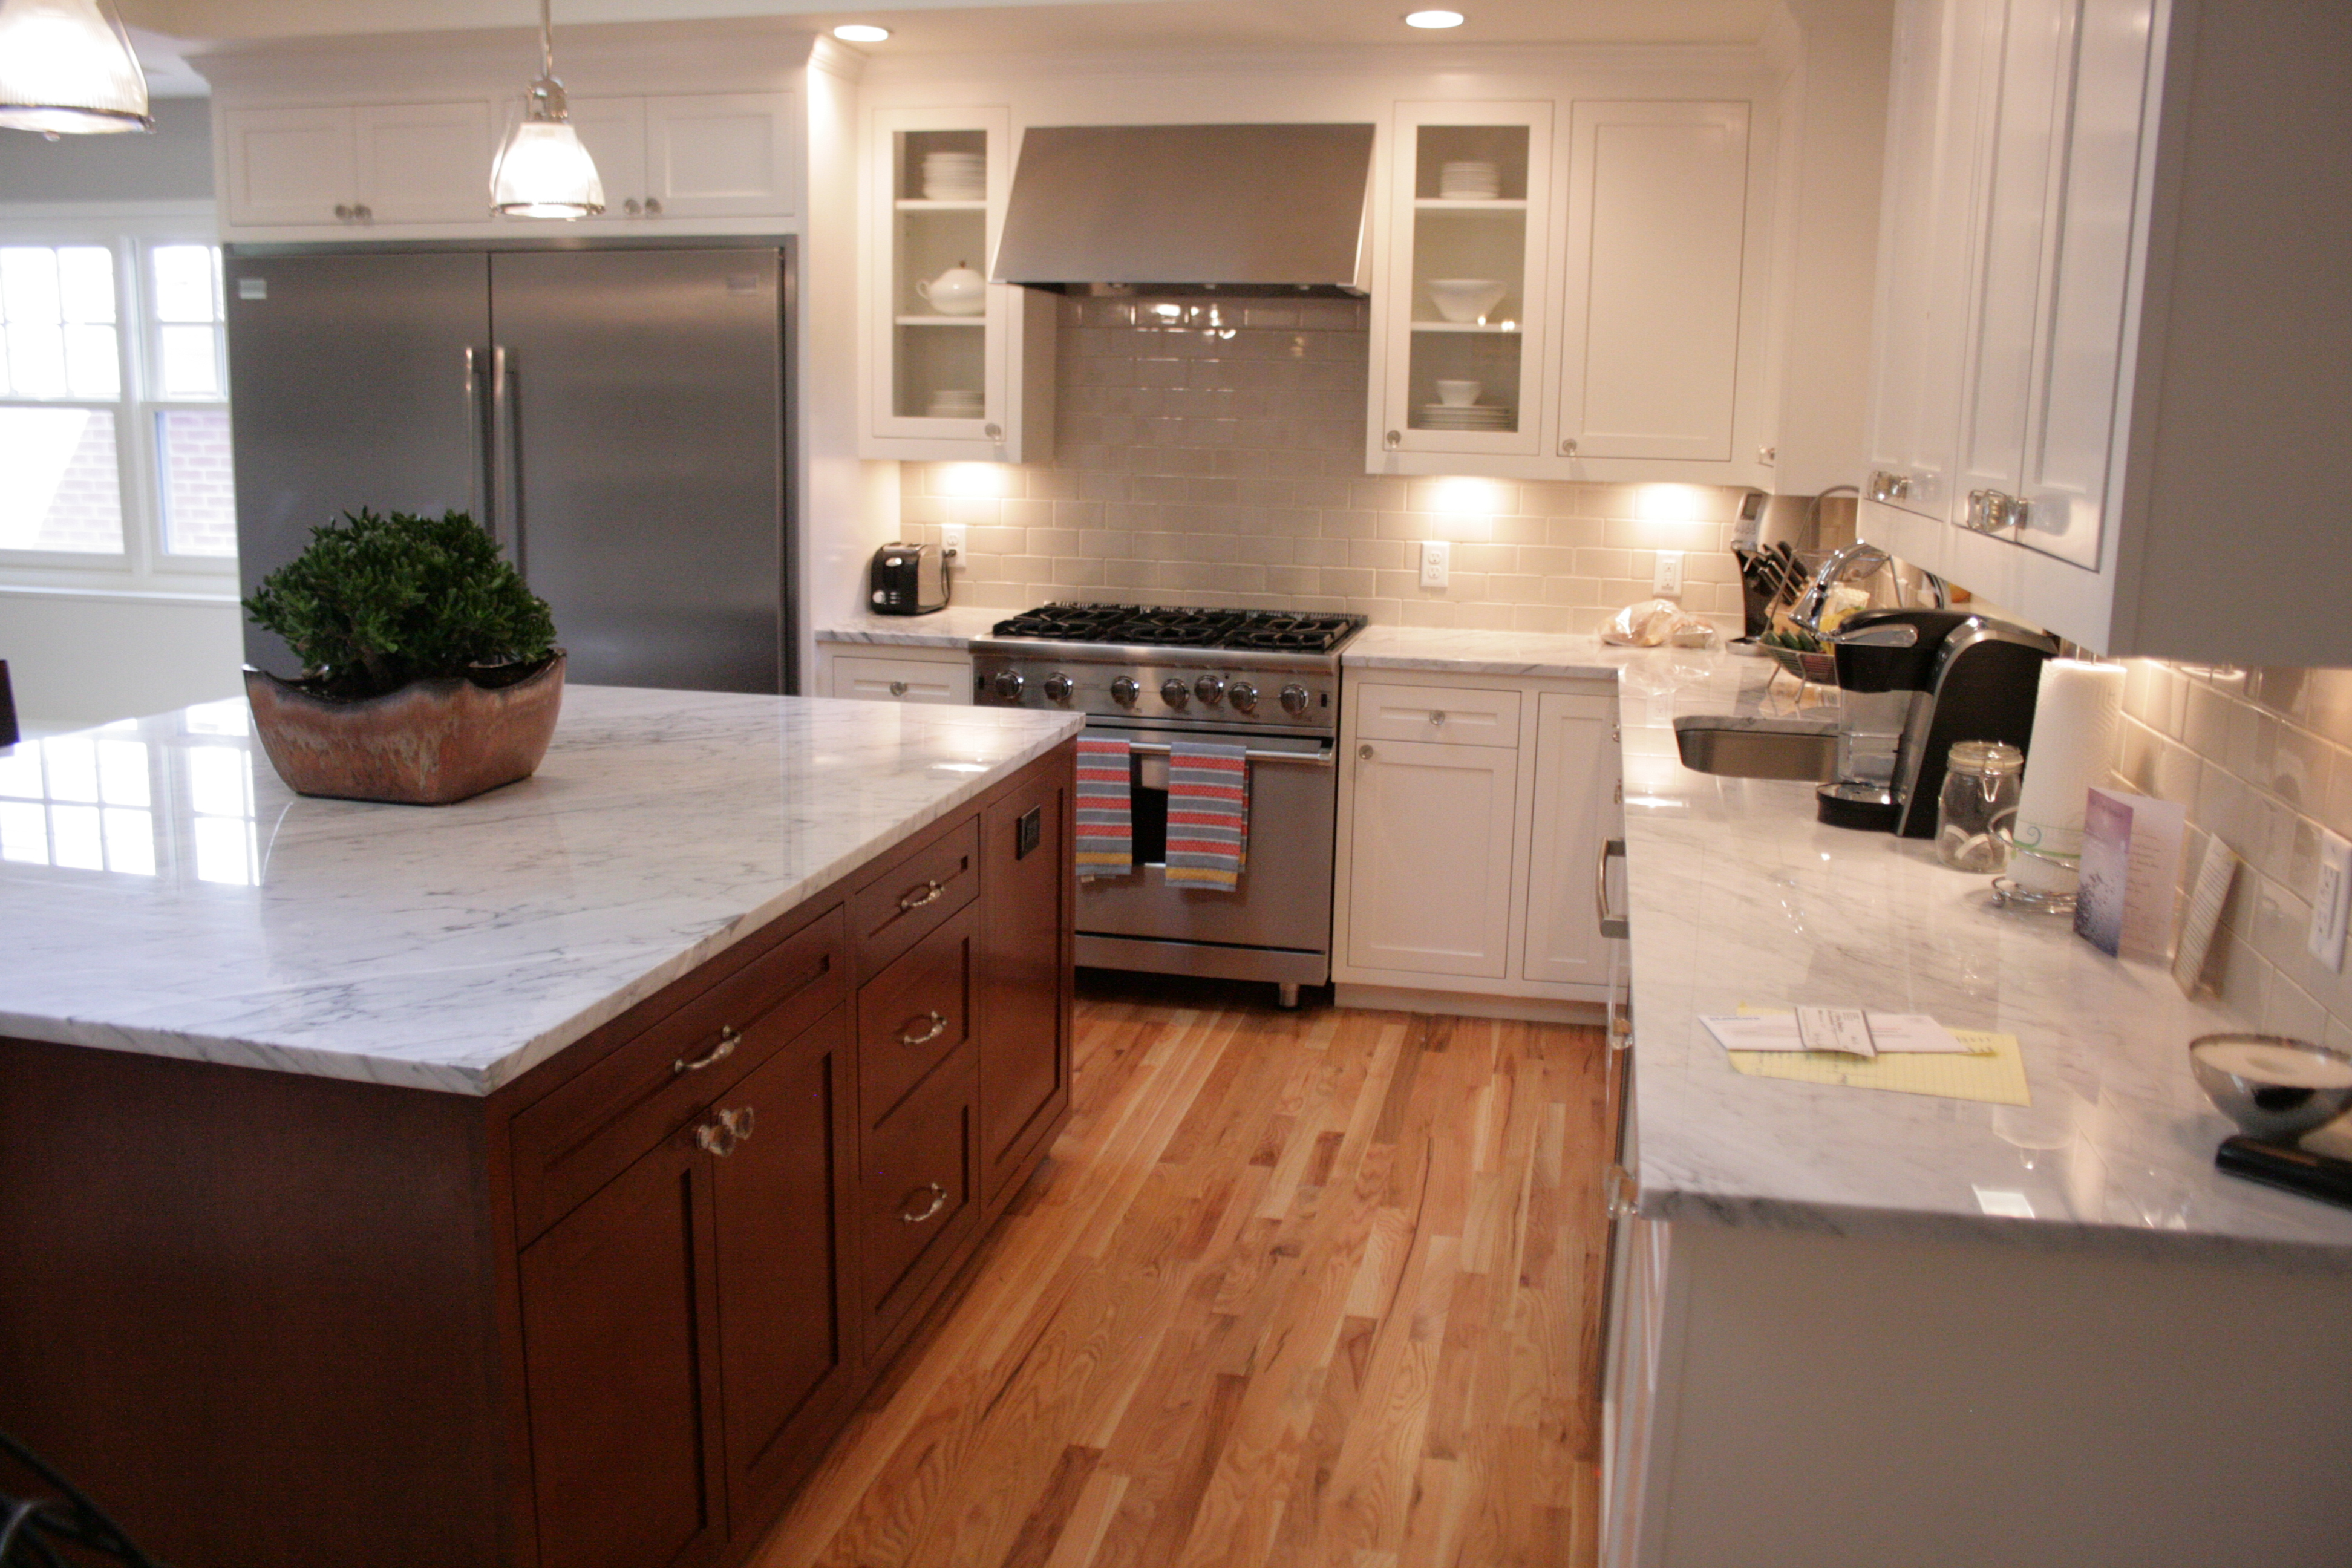 4 Ways to Refinish Your Kitchen Cabinets